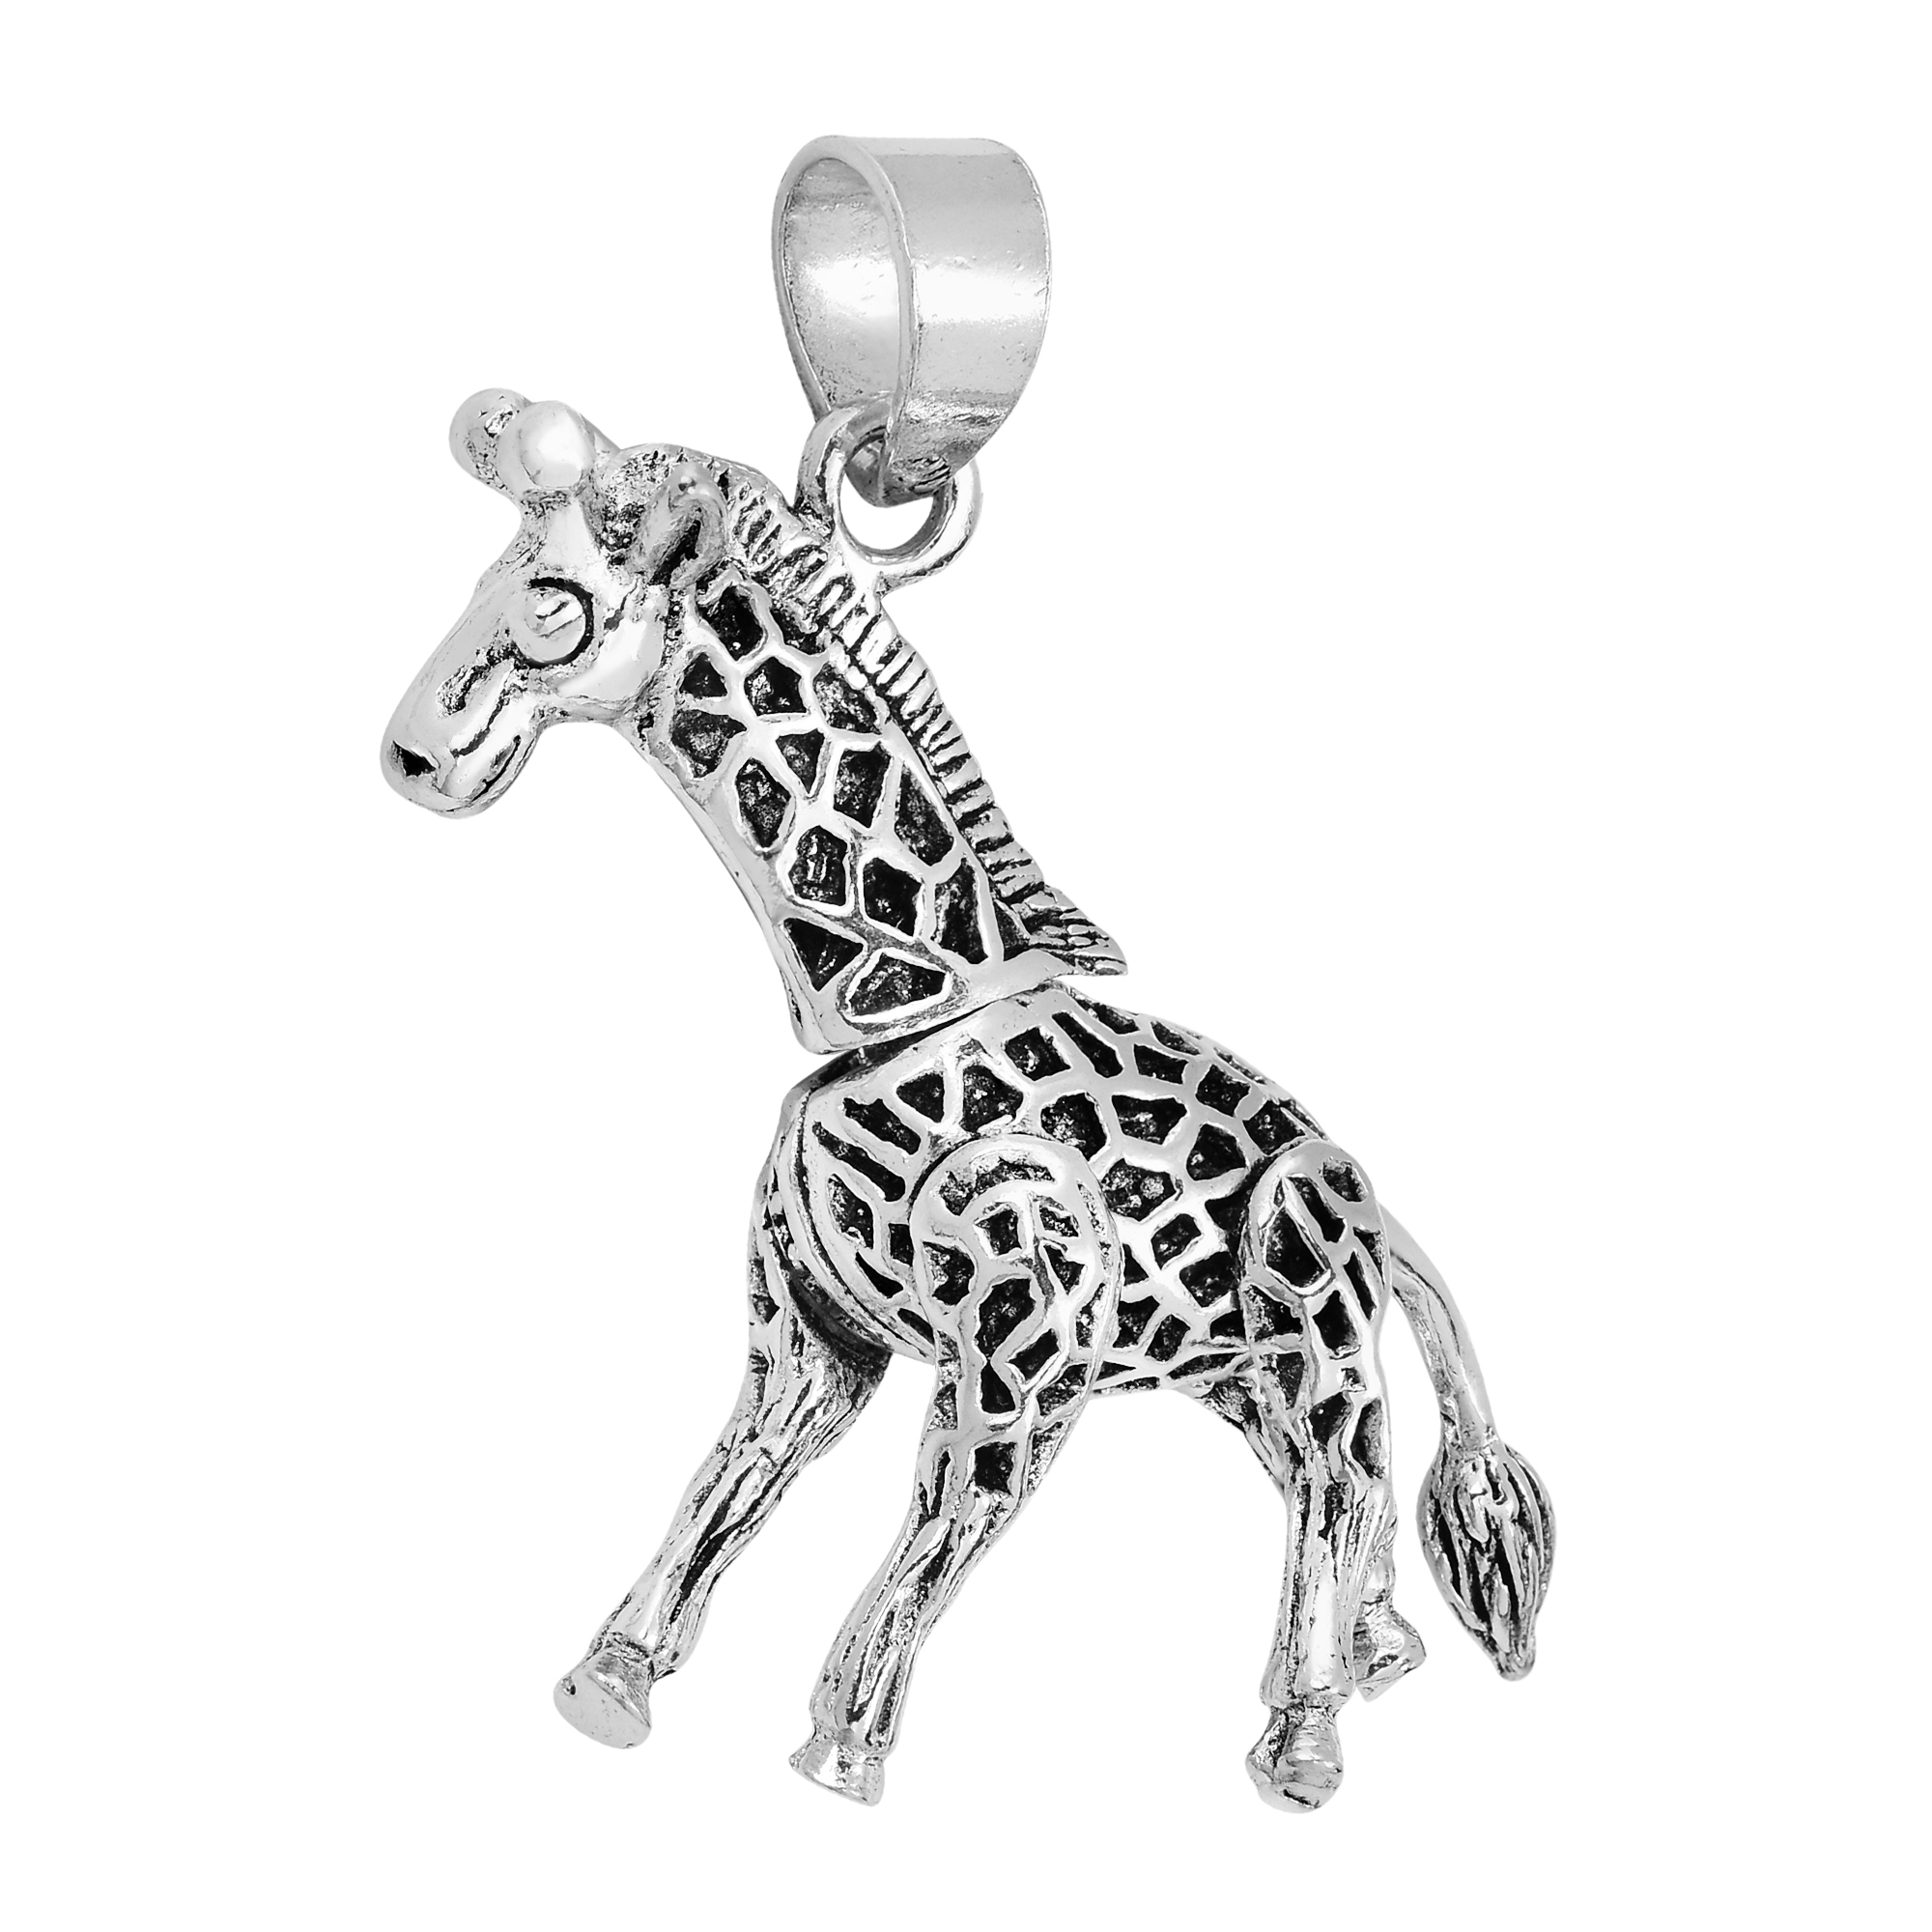 features fashioned its legs move plain tail animal details style pp unique this sterling from designed intricately neck silver aeravida and pendant pendants the giraffe can products parts movable